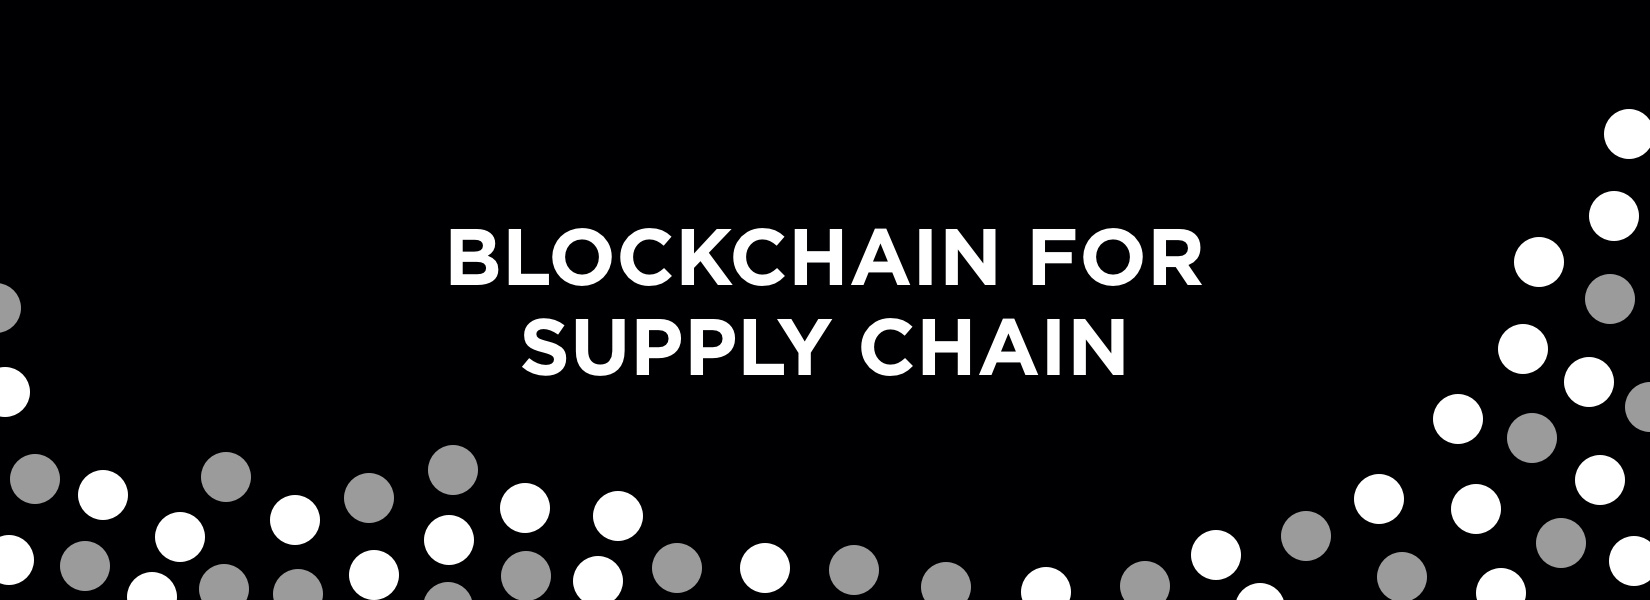 Do you need blockchain in your supply chain?